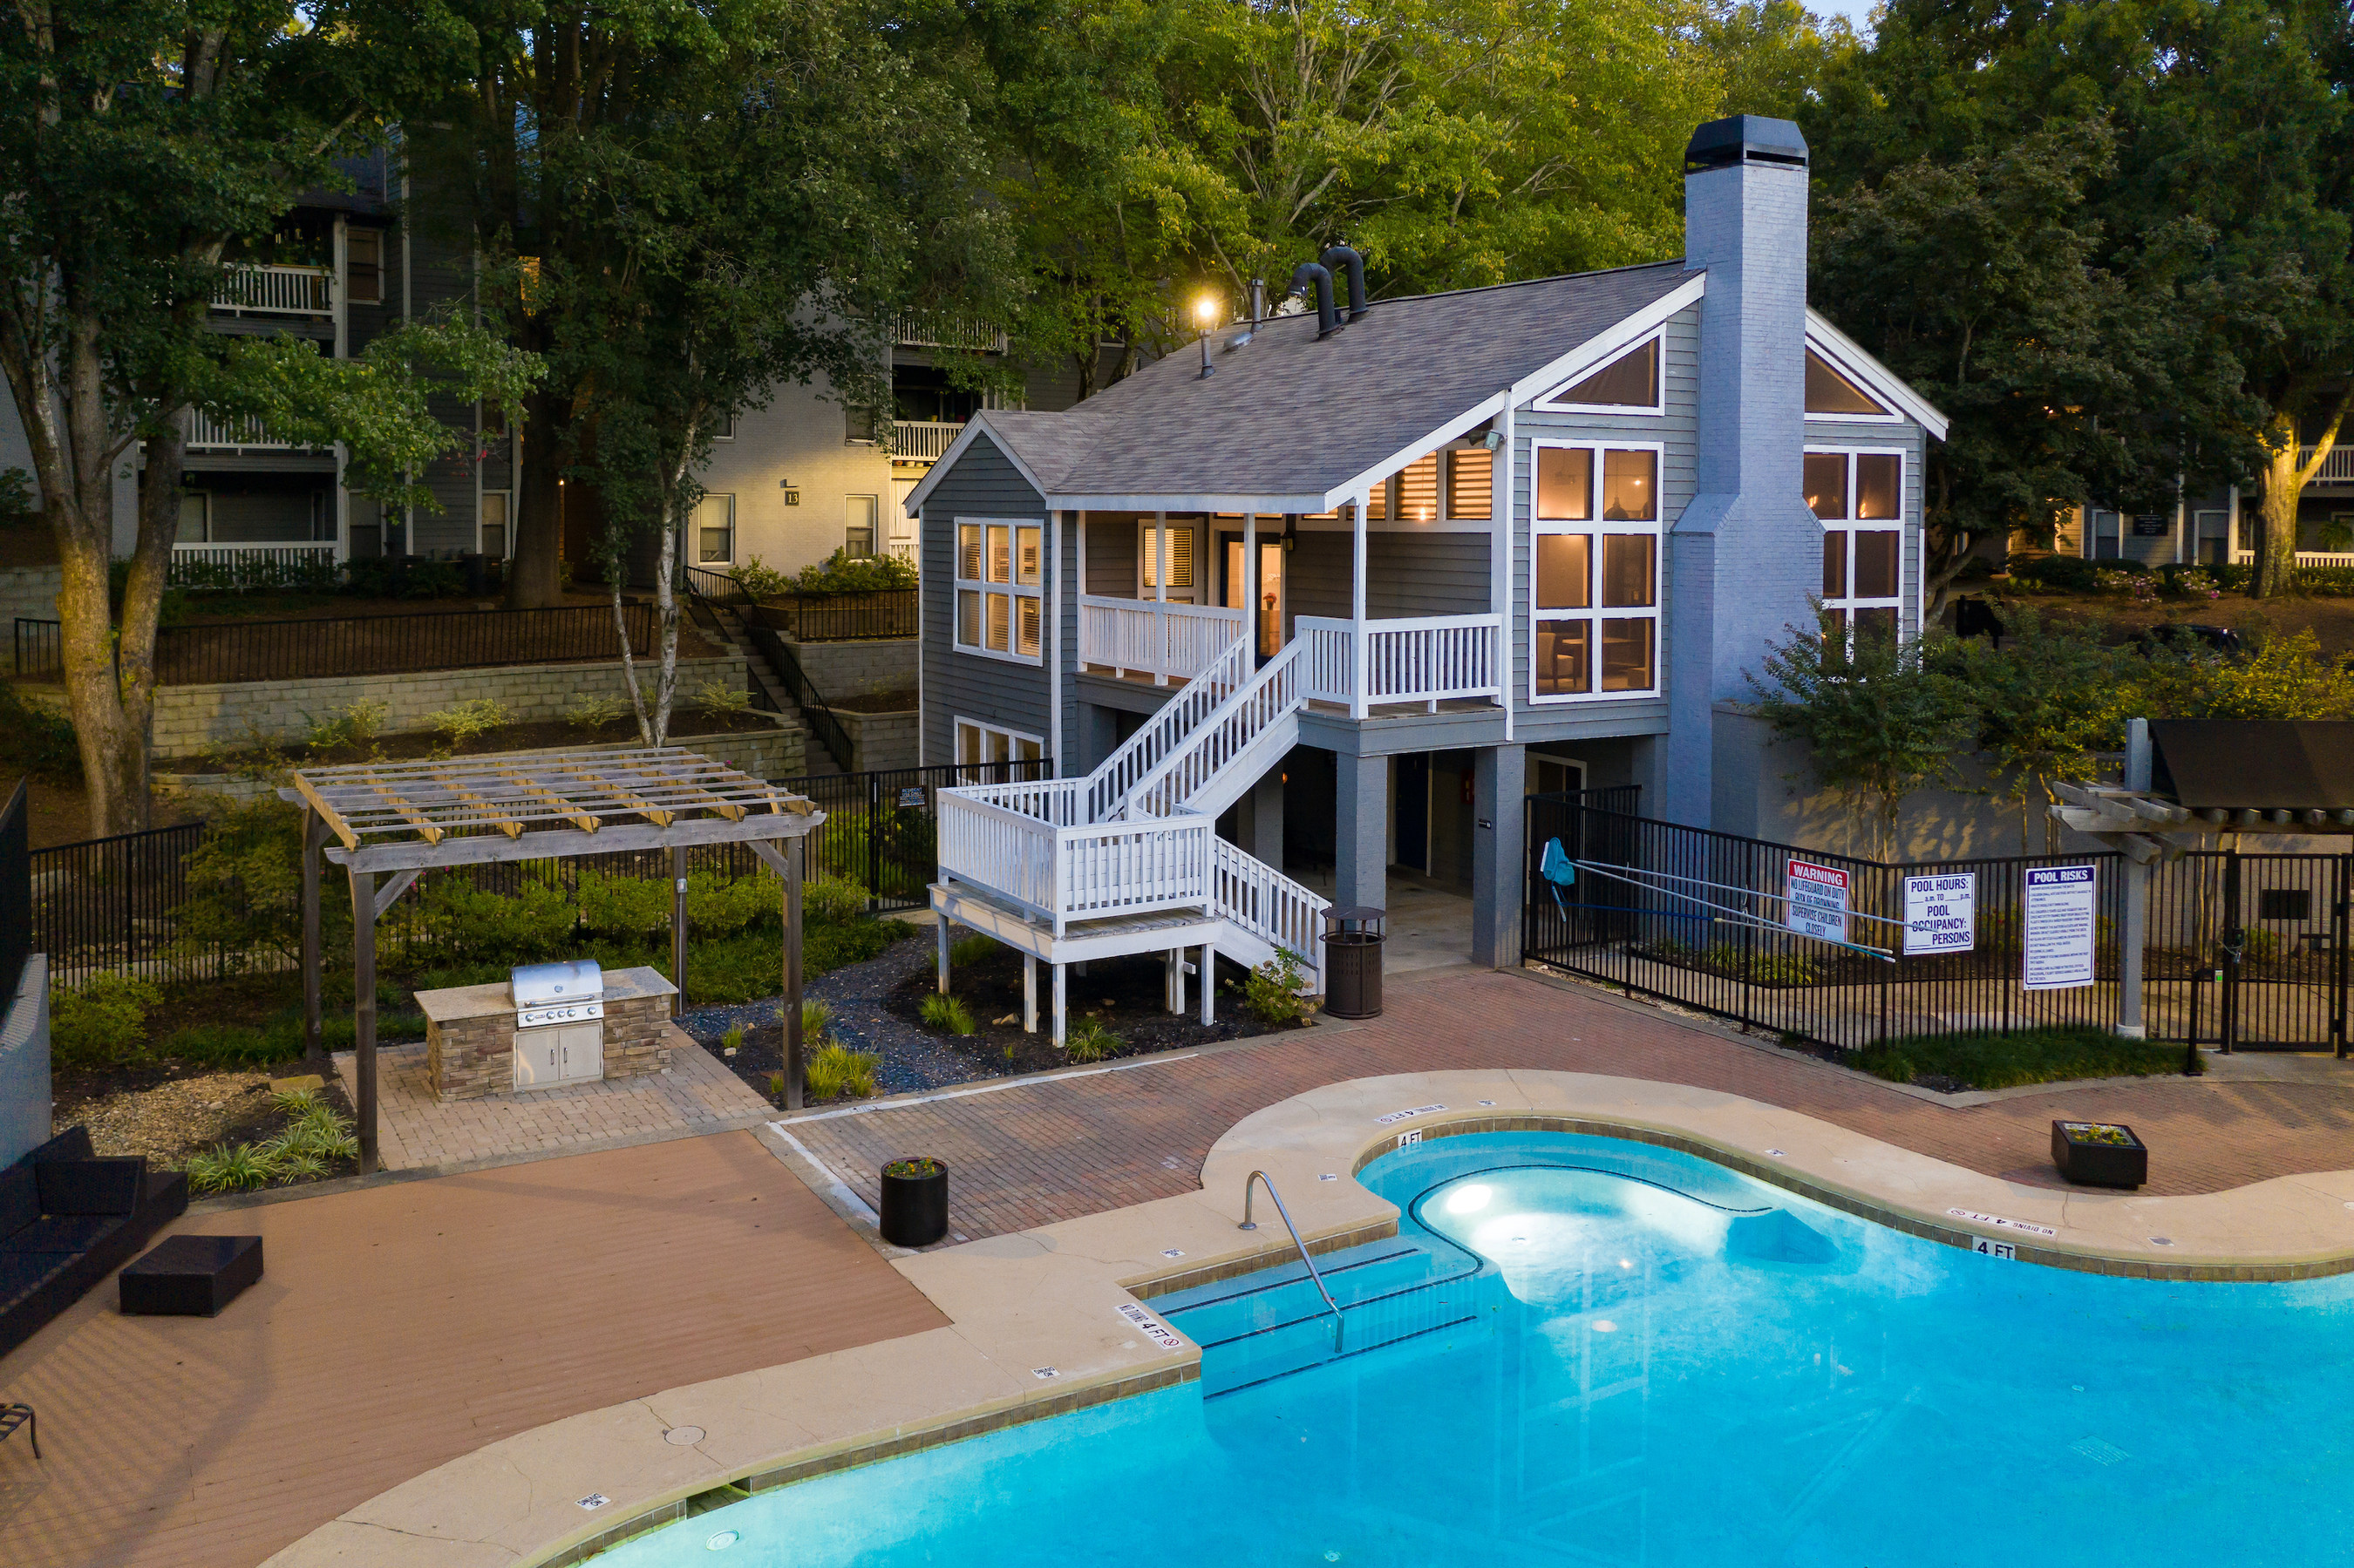 TerraCap Management Sells 268-Unit The Crossings at Holcomb Bridge Apartments in Northern Atlanta Suburb for $39 Million